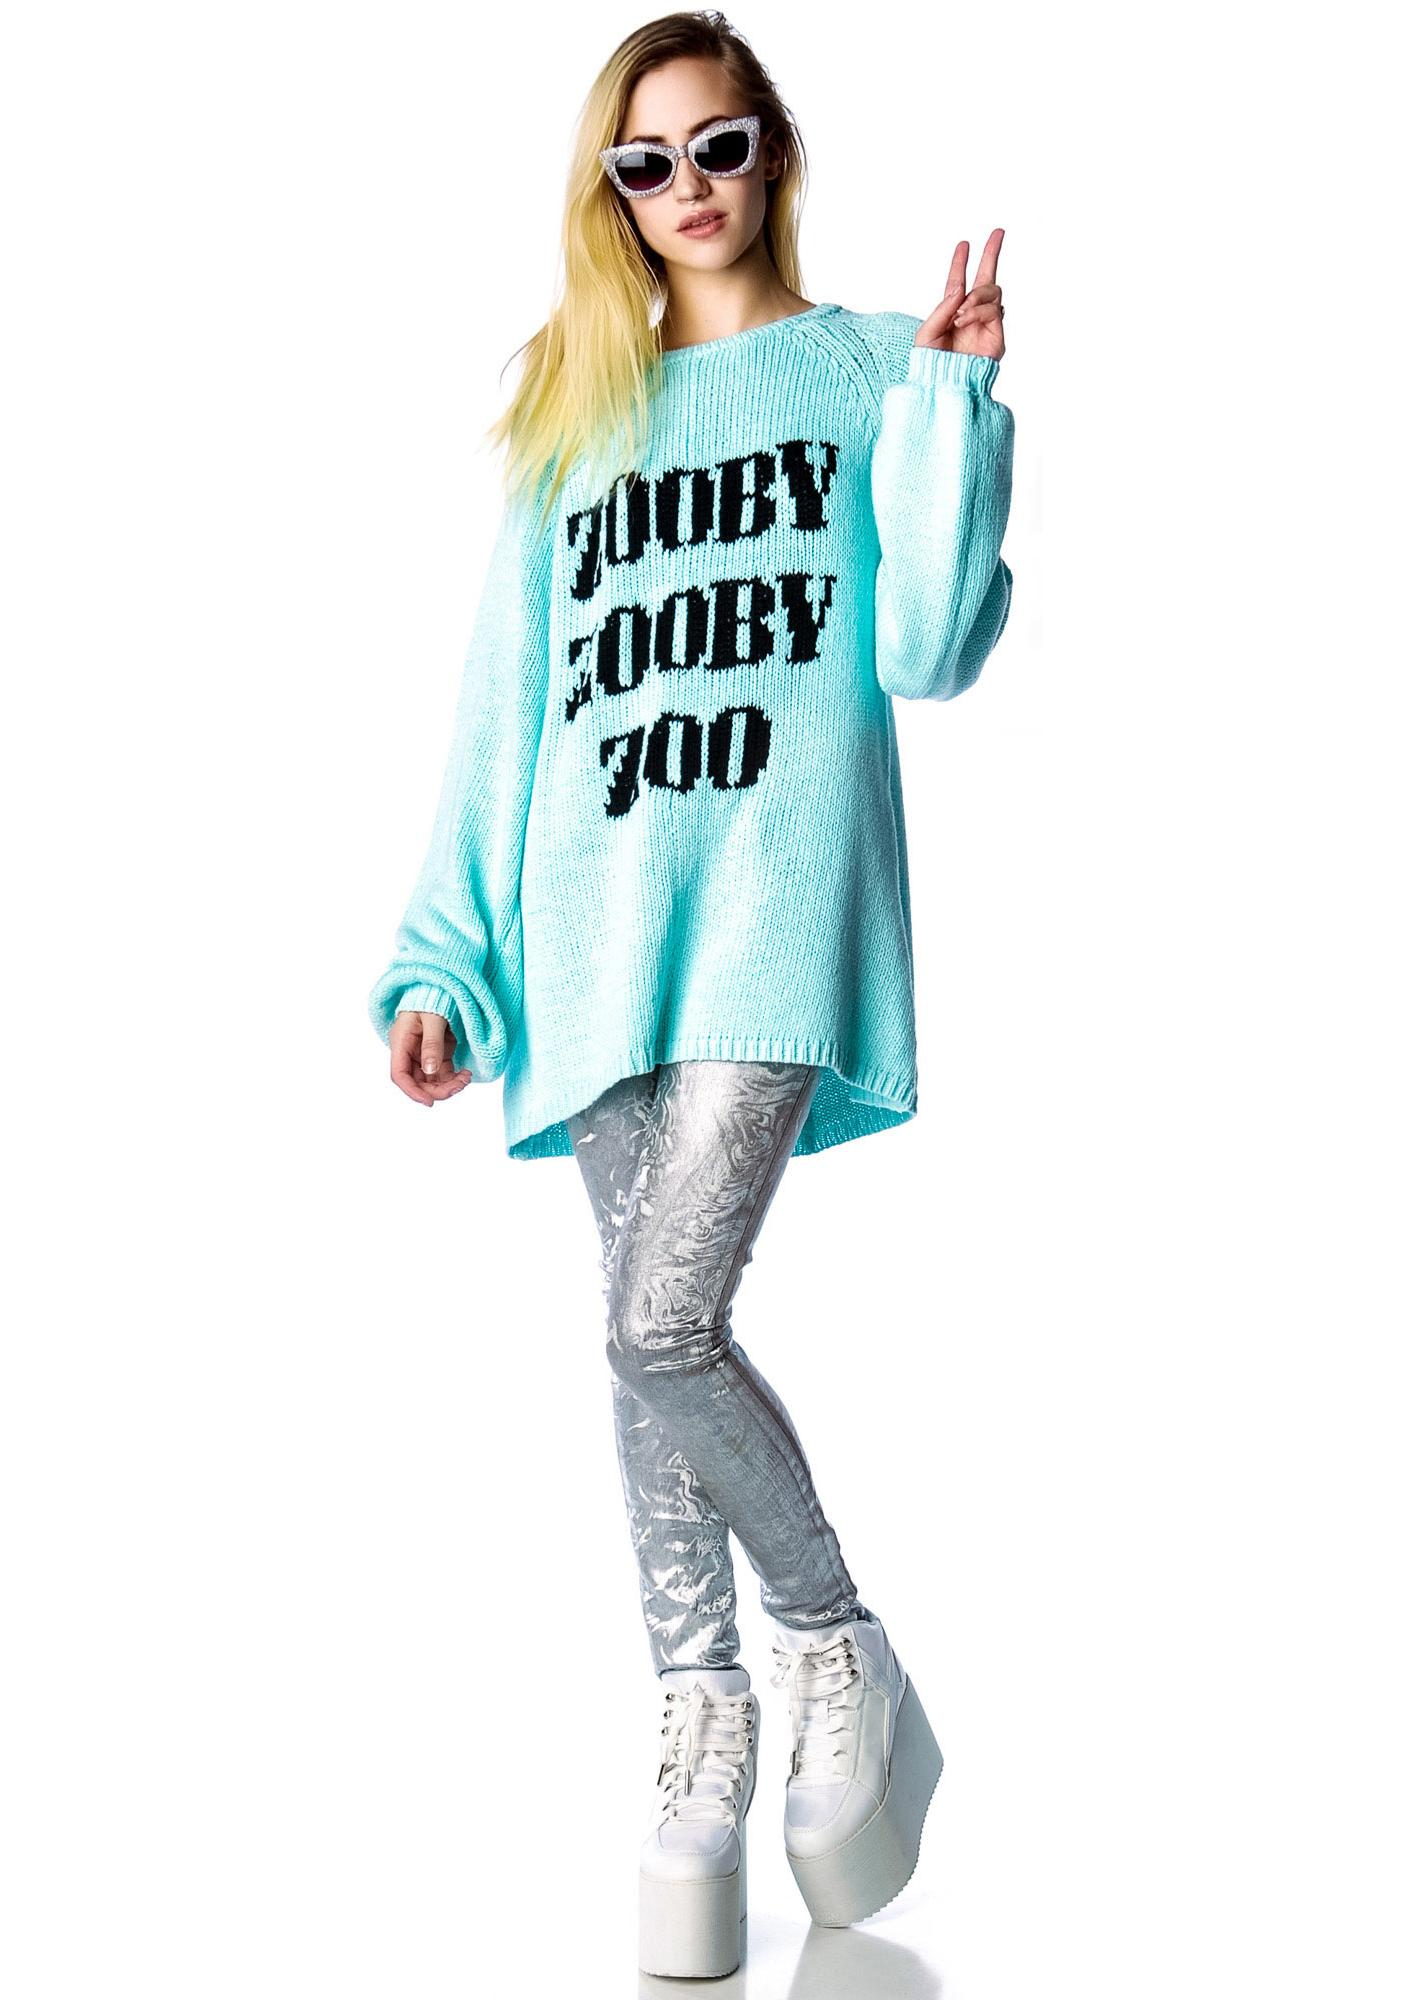 Wildfox Couture Zooby Zoo California Dream Sweater